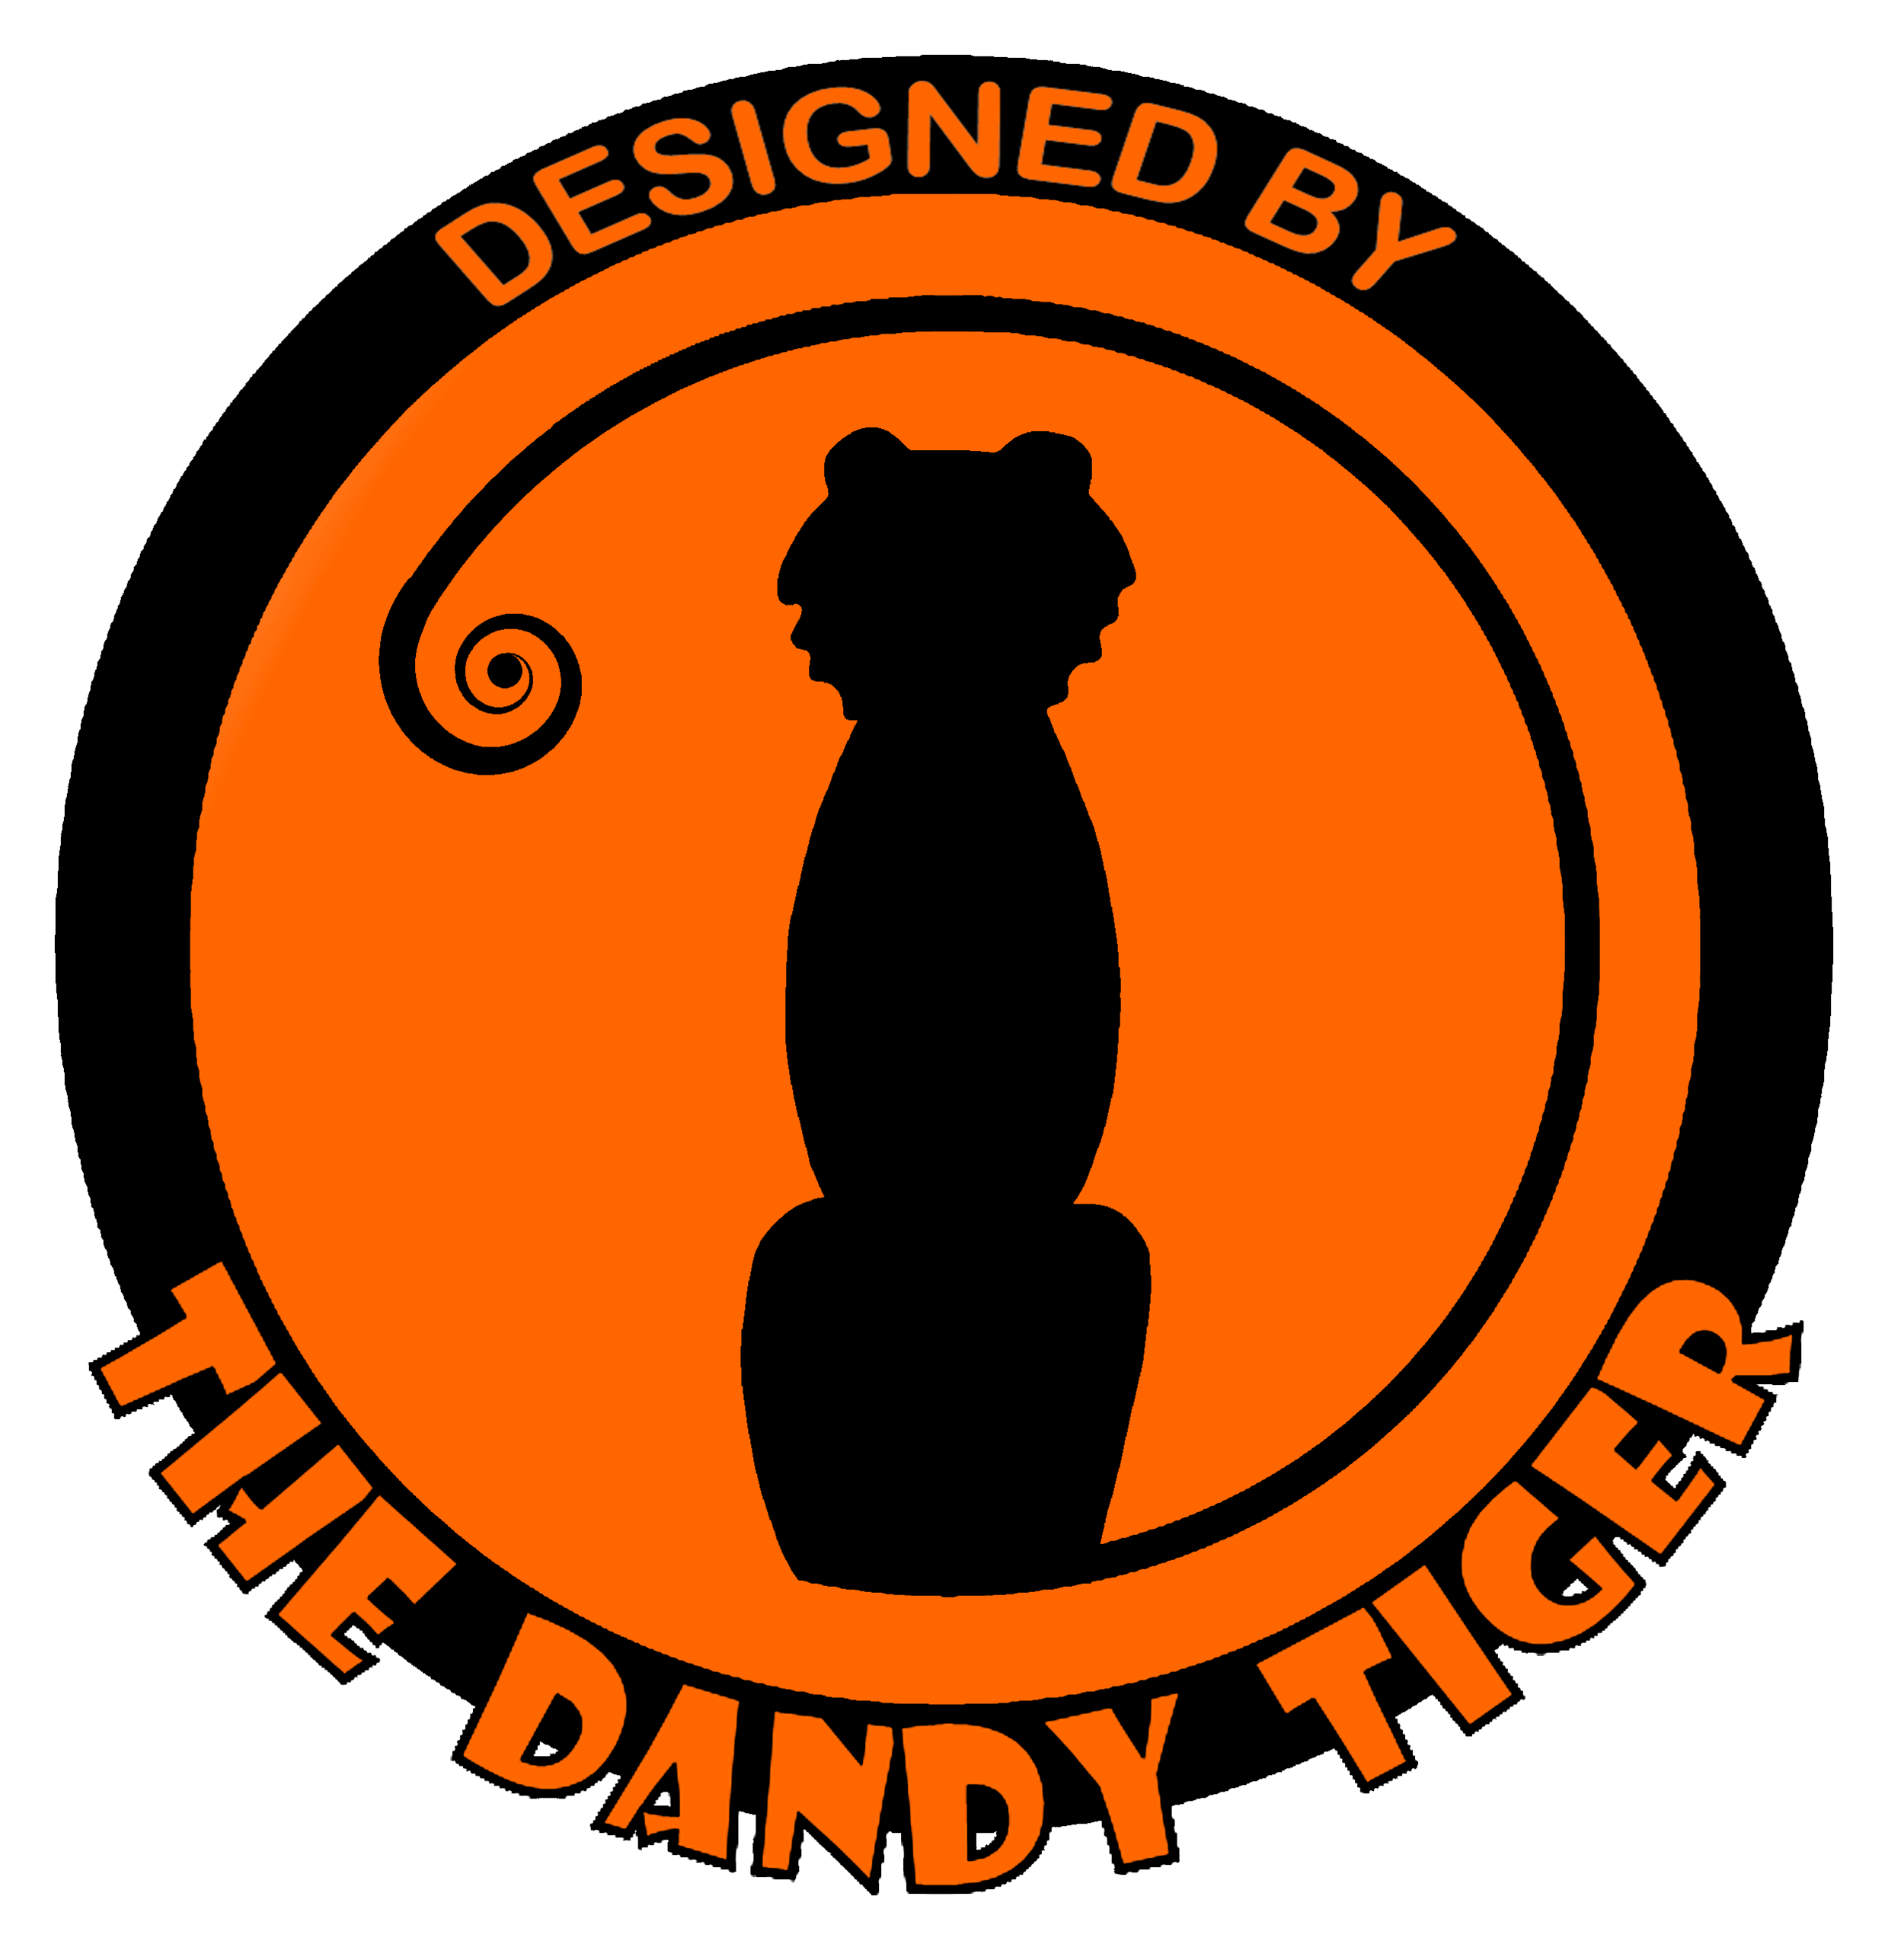 new tdt logo 26 DESIGNED BY cropped.png